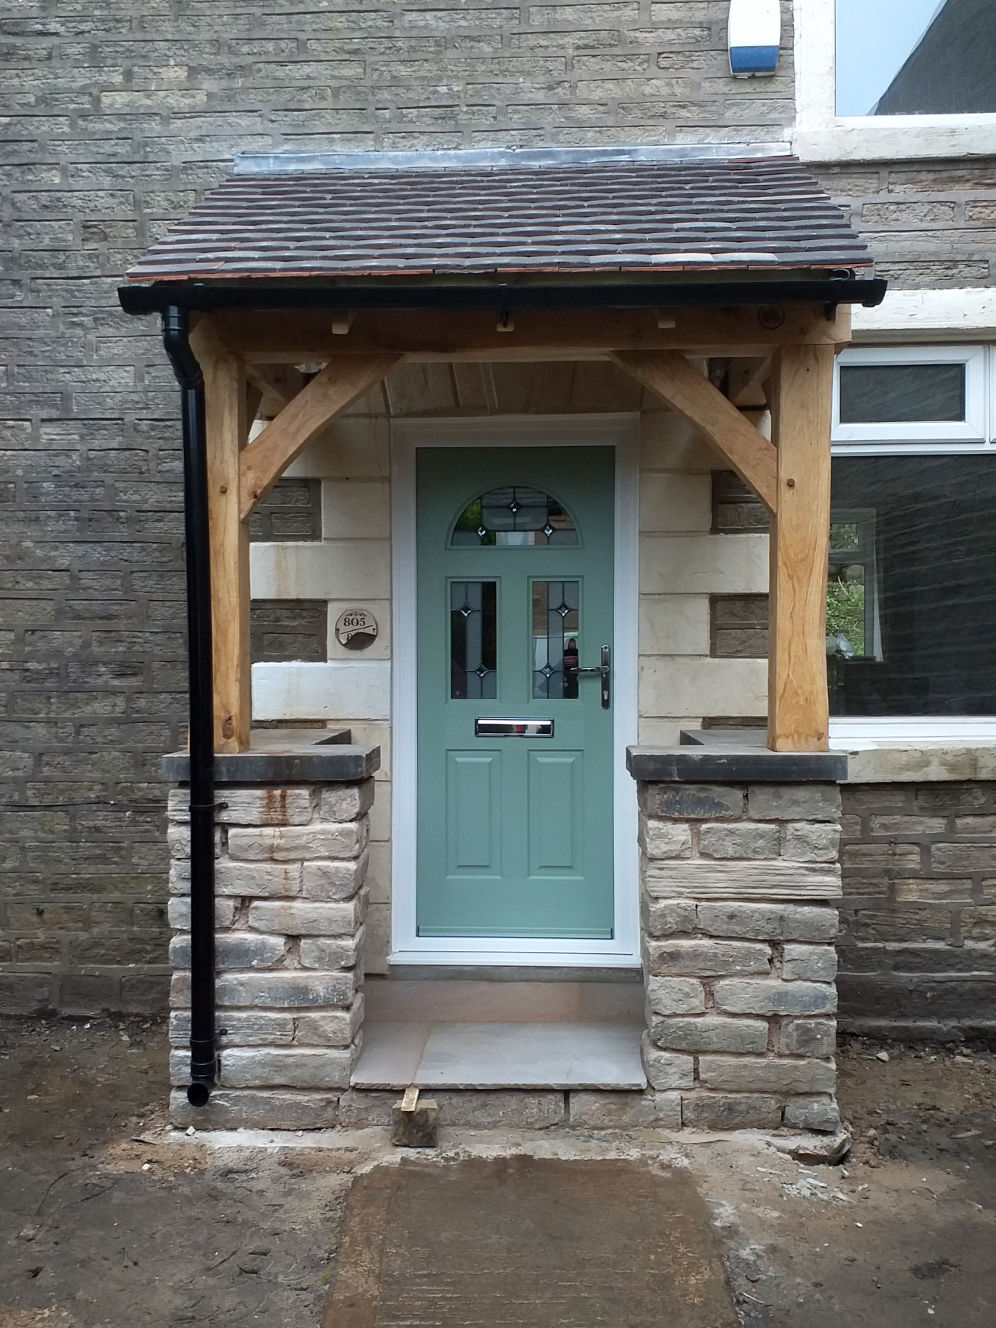 Front entrance, Porch with traditional Oak Frame, stone work, pitched roof complete with rain gutters